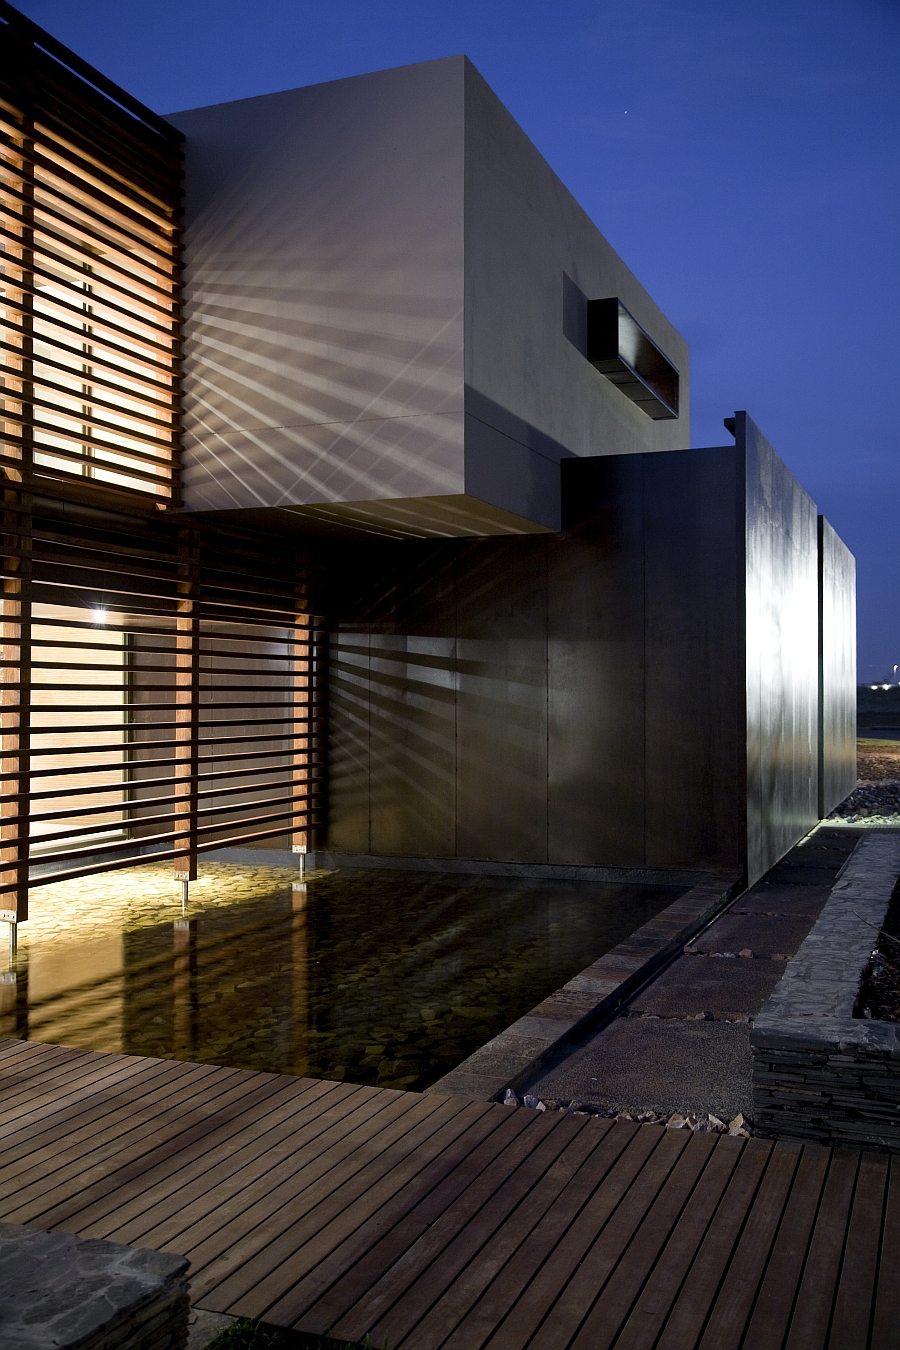 House Serengeti Sharp Angles Contemporary Architecture